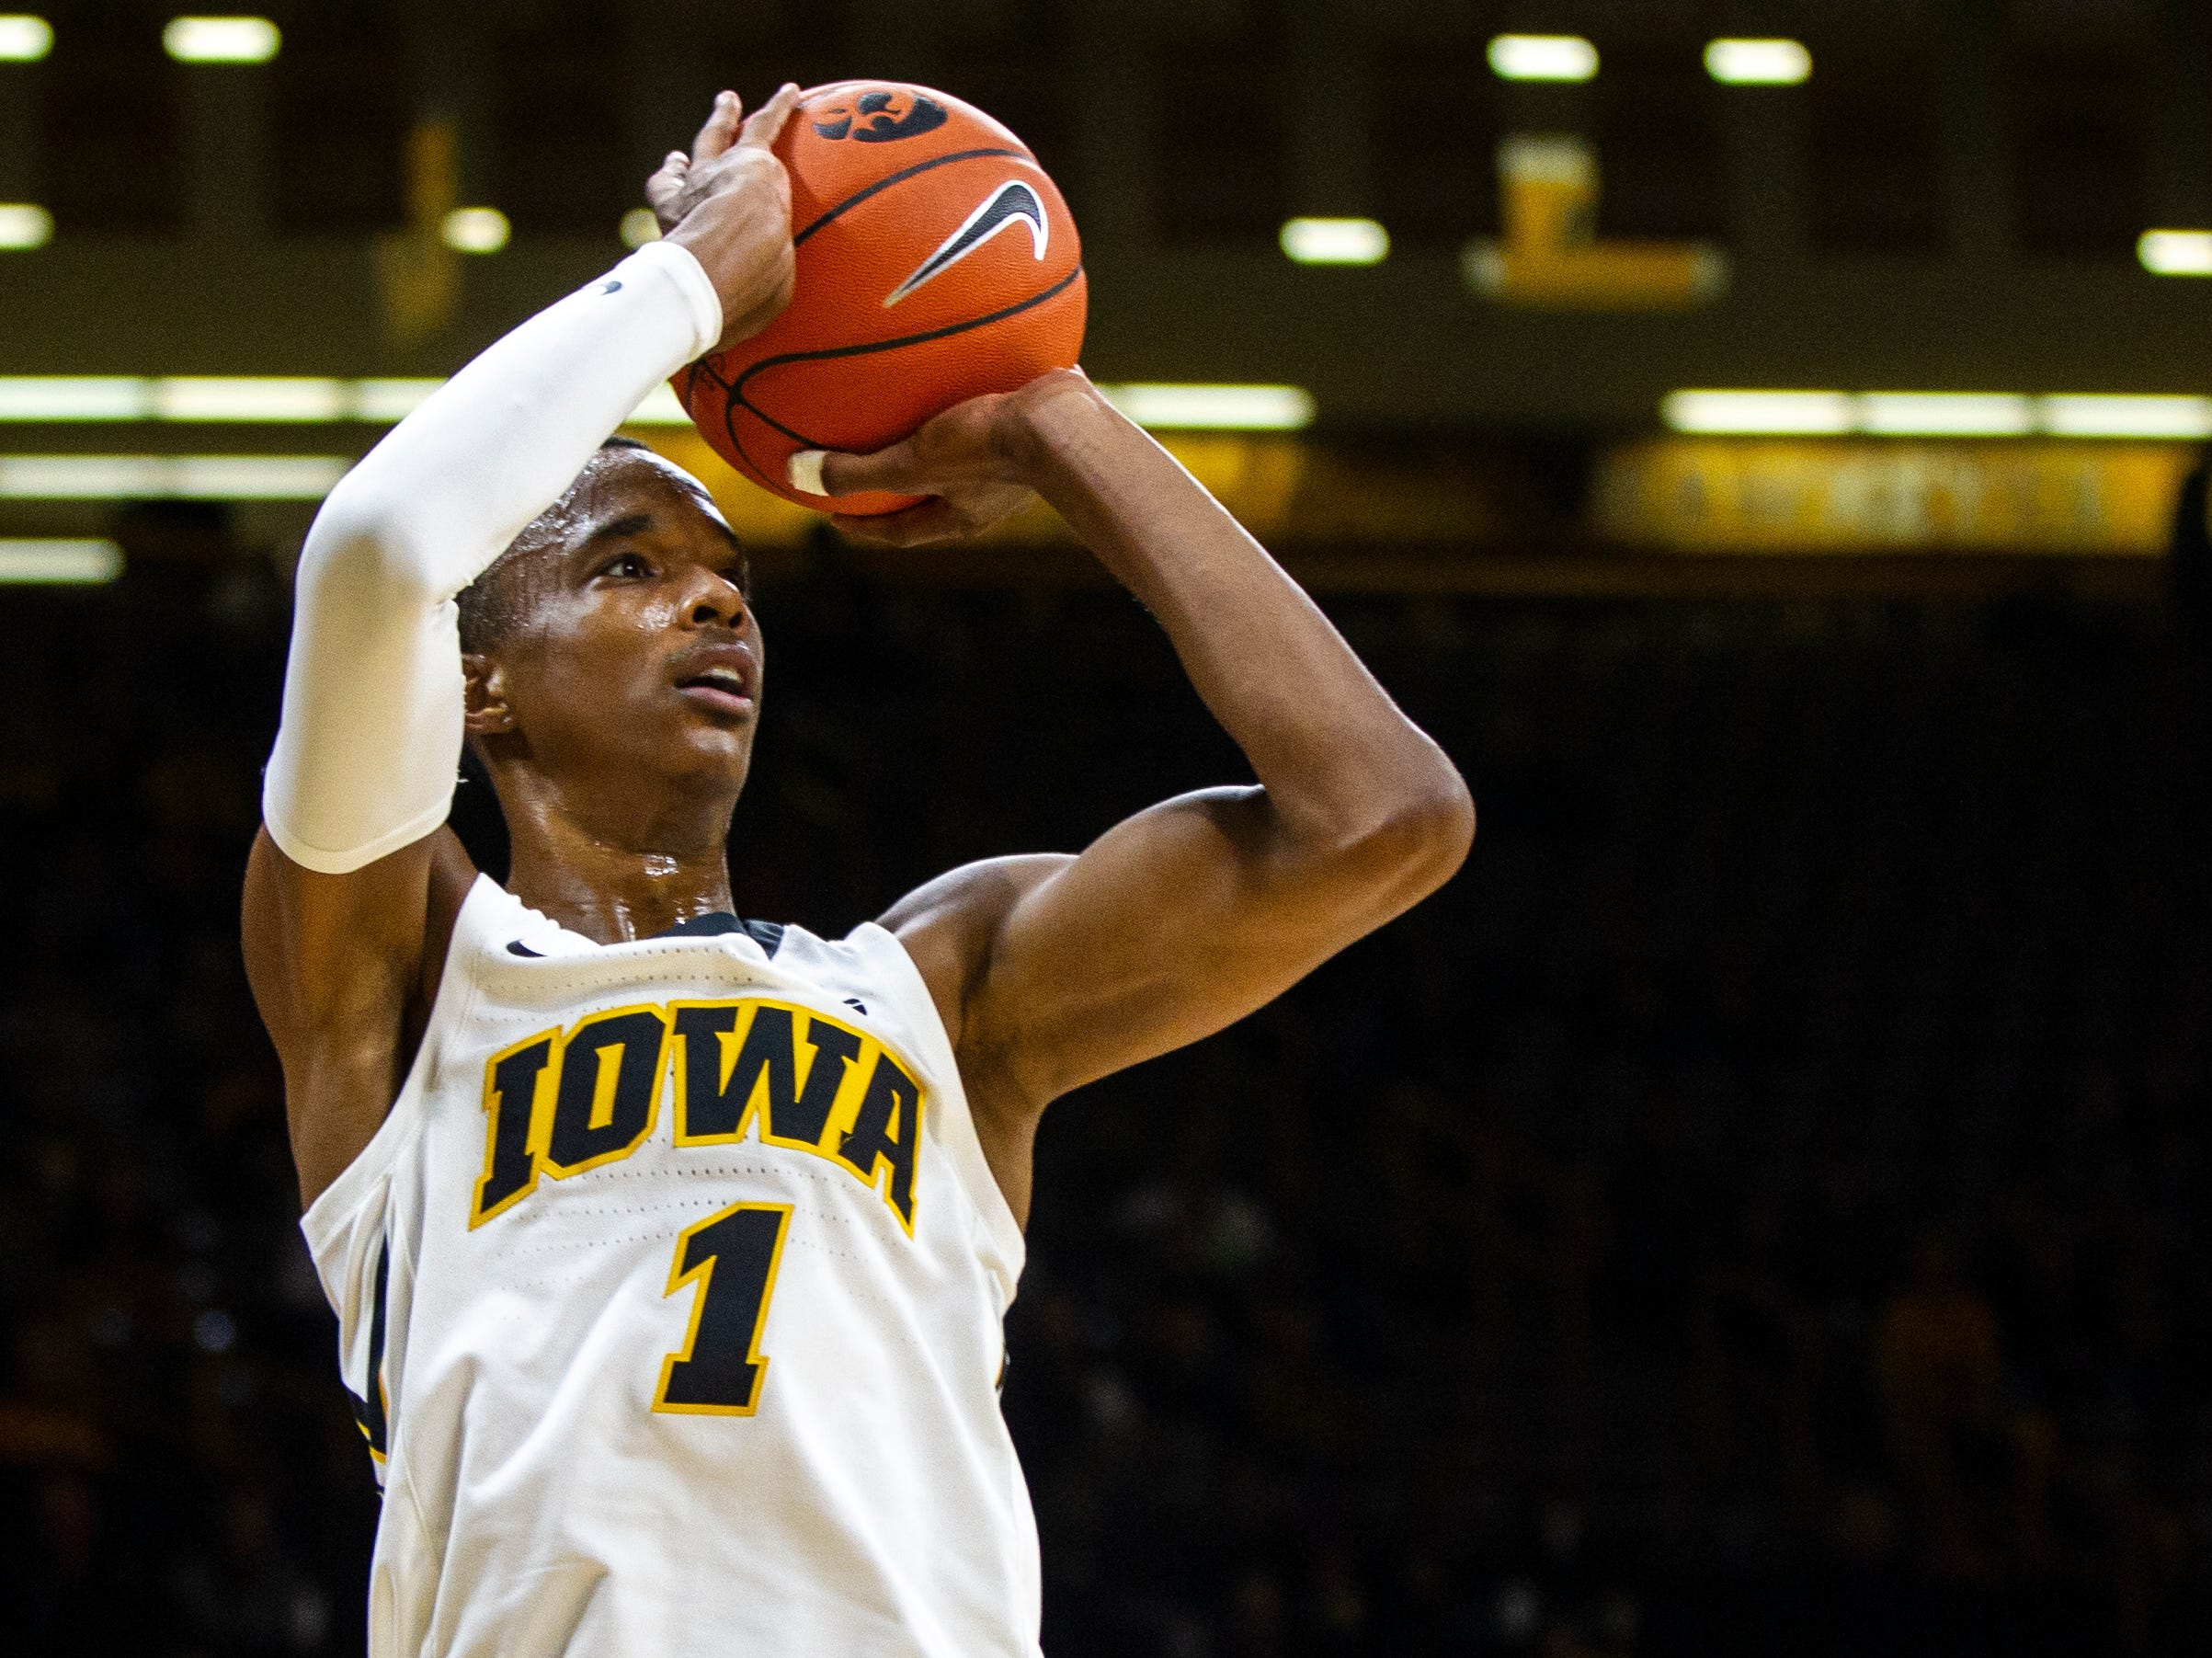 Maishe Dailey brings a dose of newfound swagger to Iowa basketball team